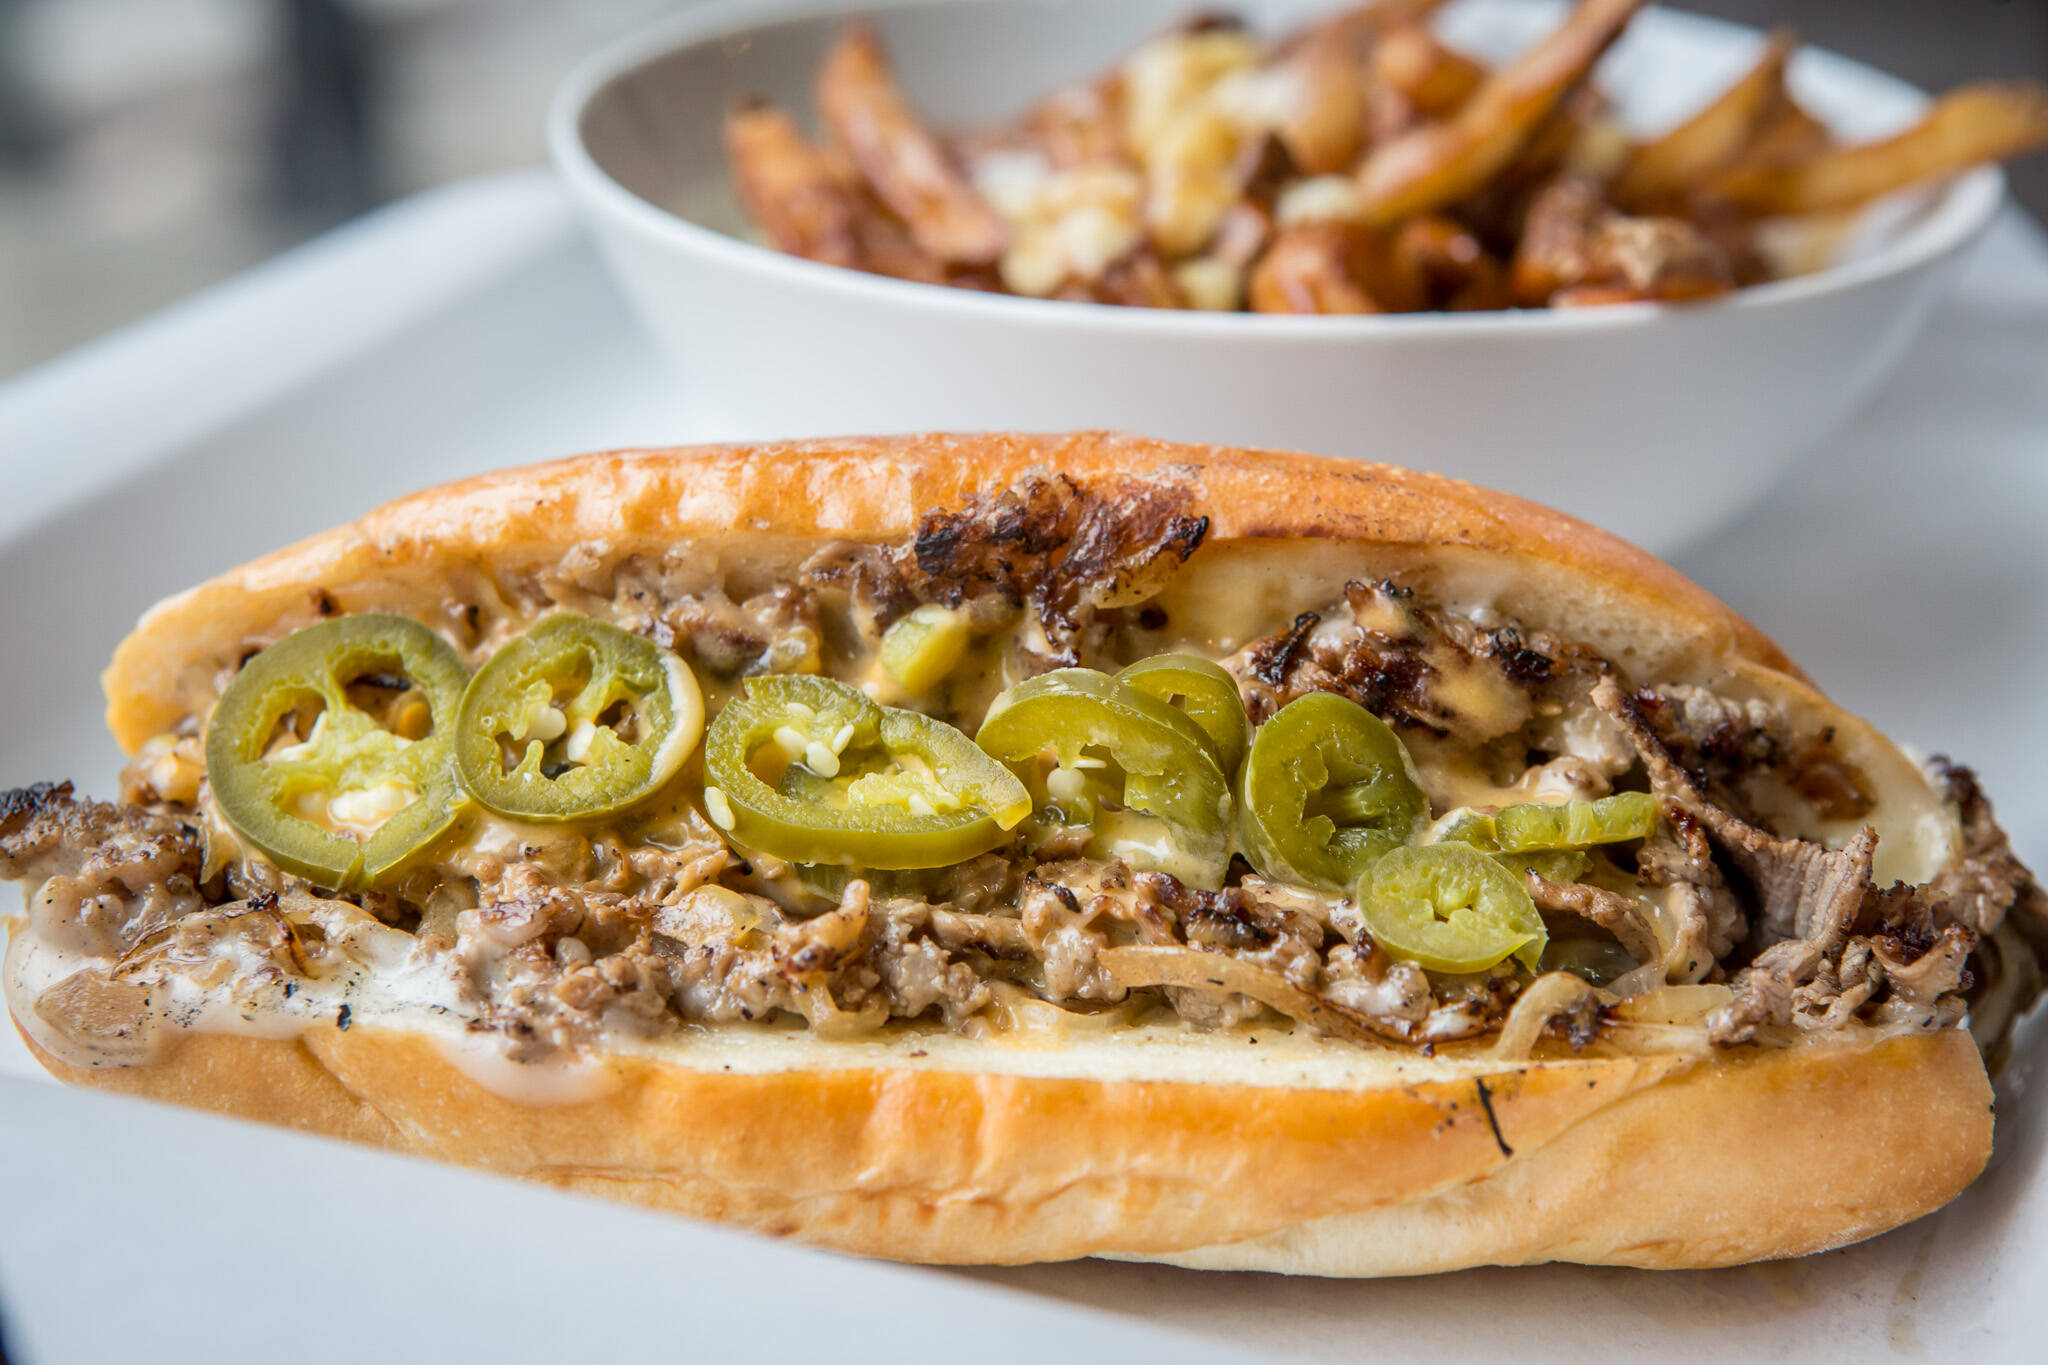 Philly Cheesesteak Toronto